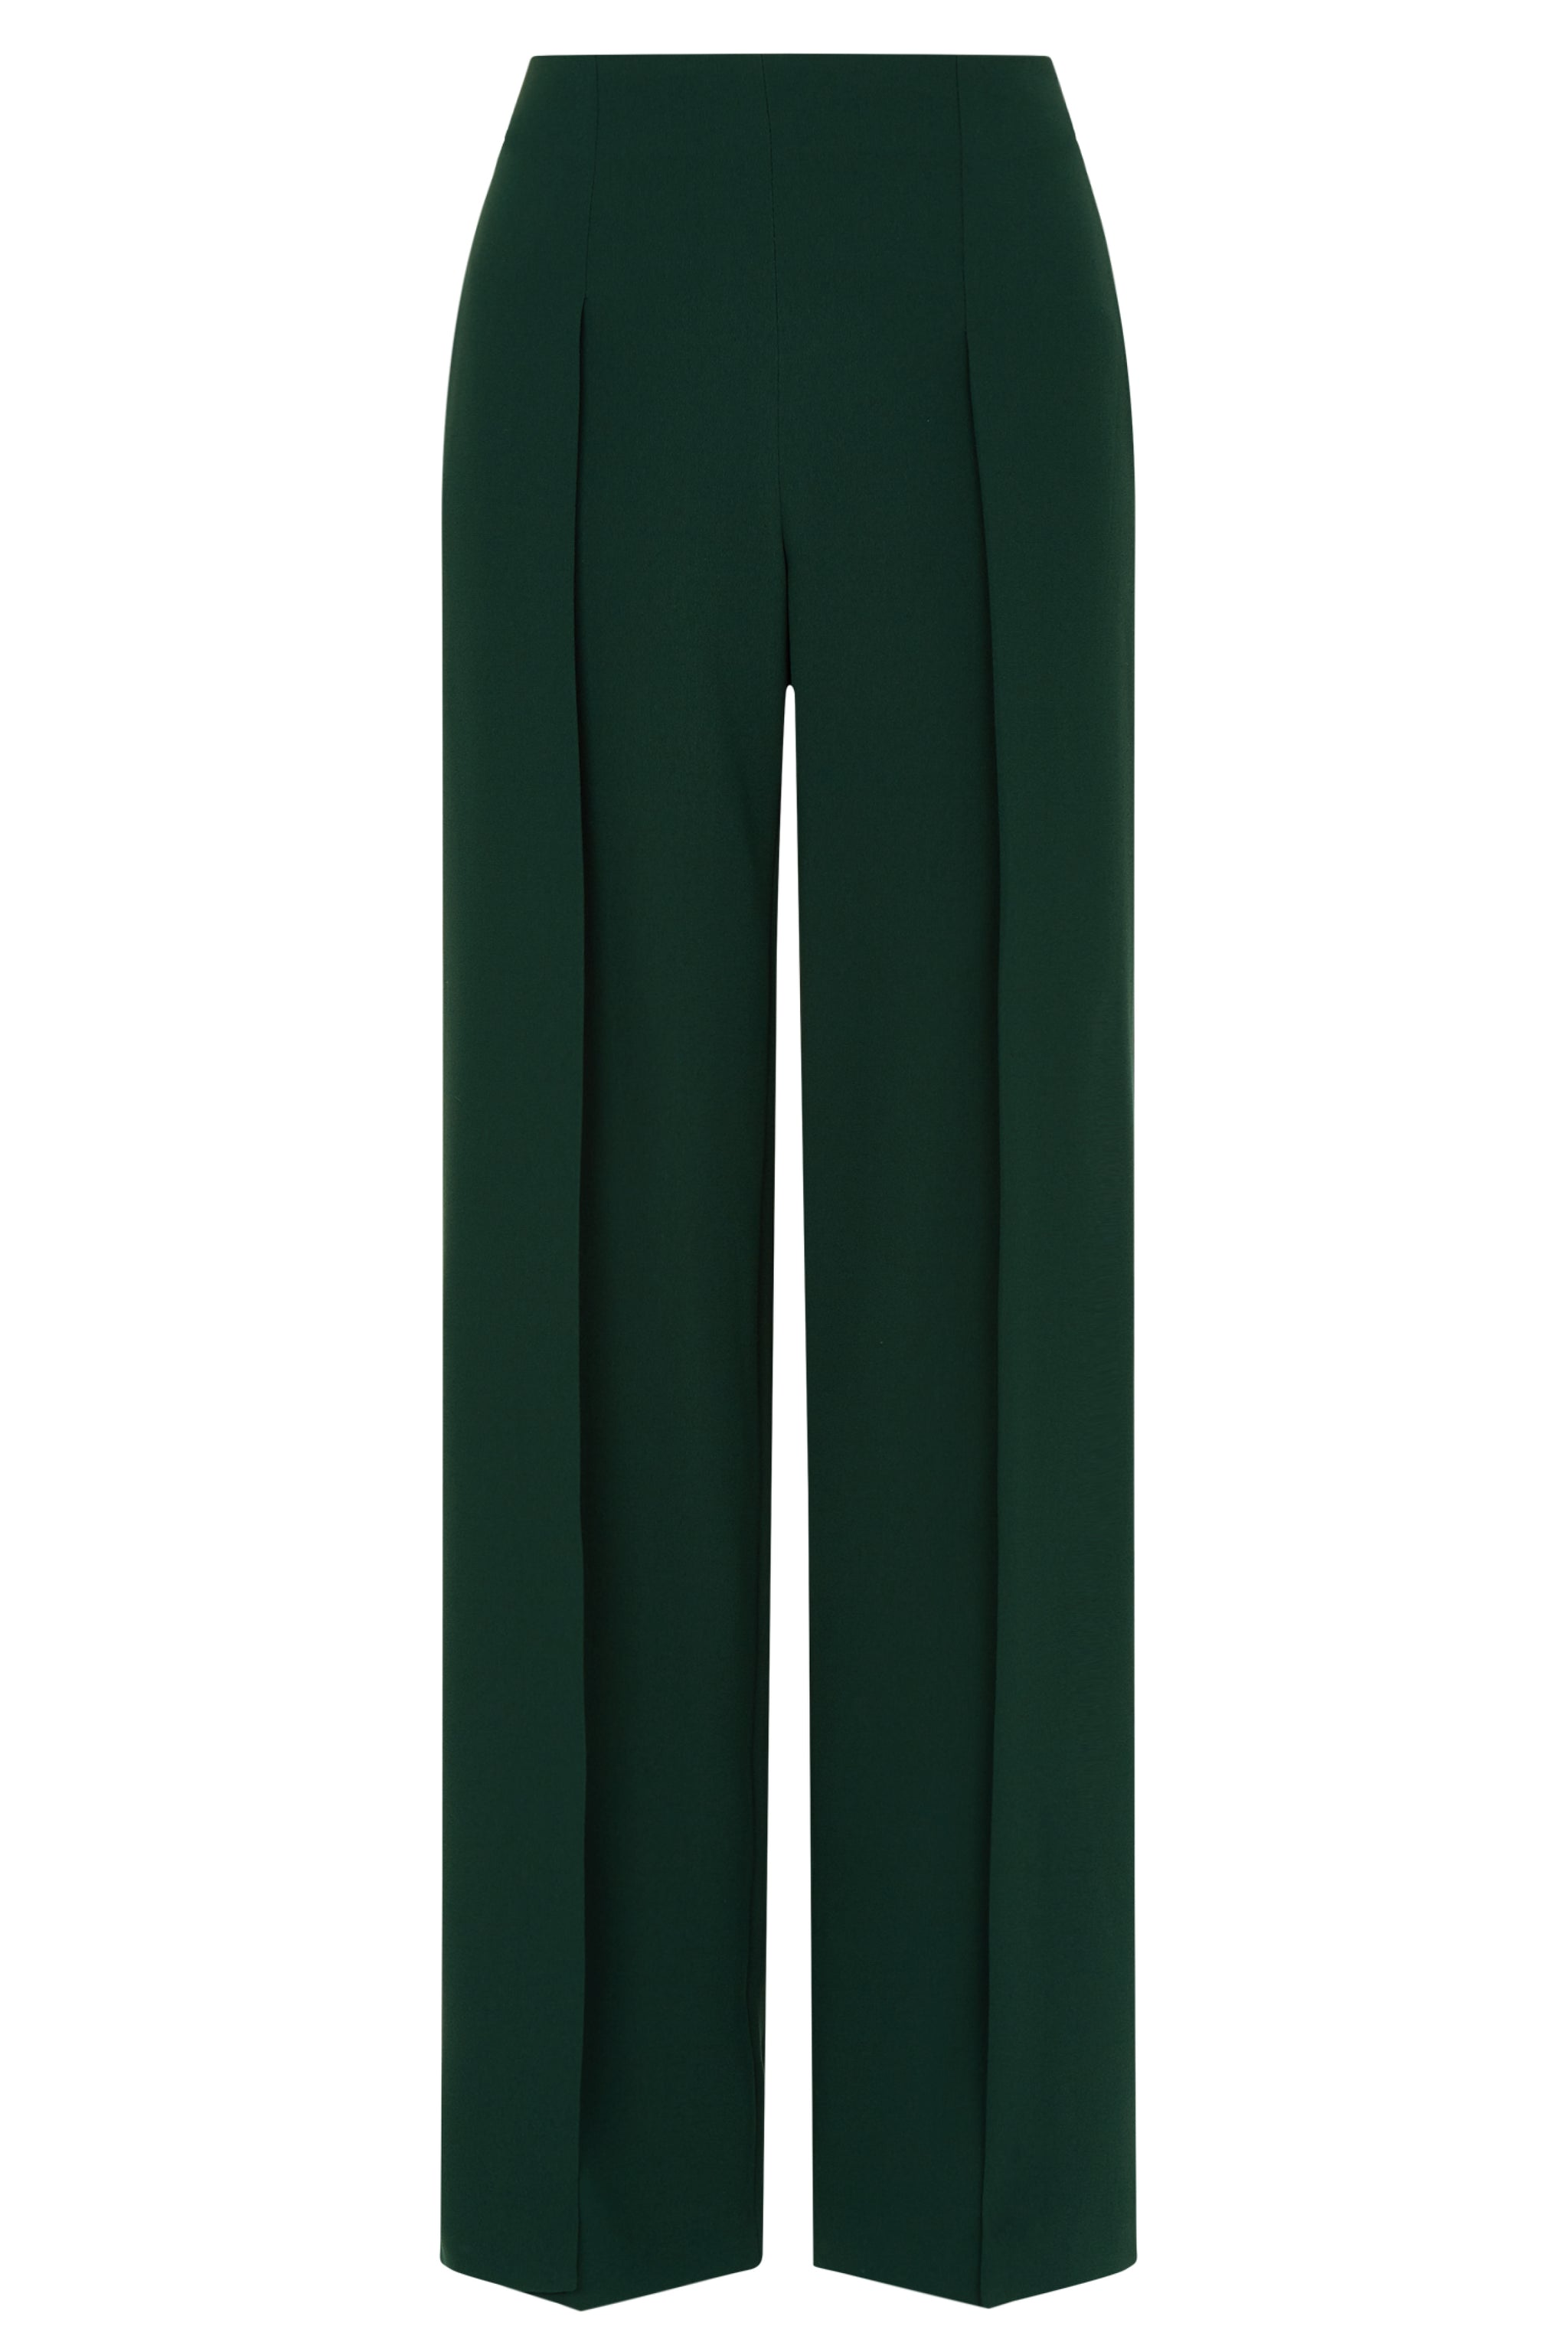 Fenchurch Green Crepe Trousers